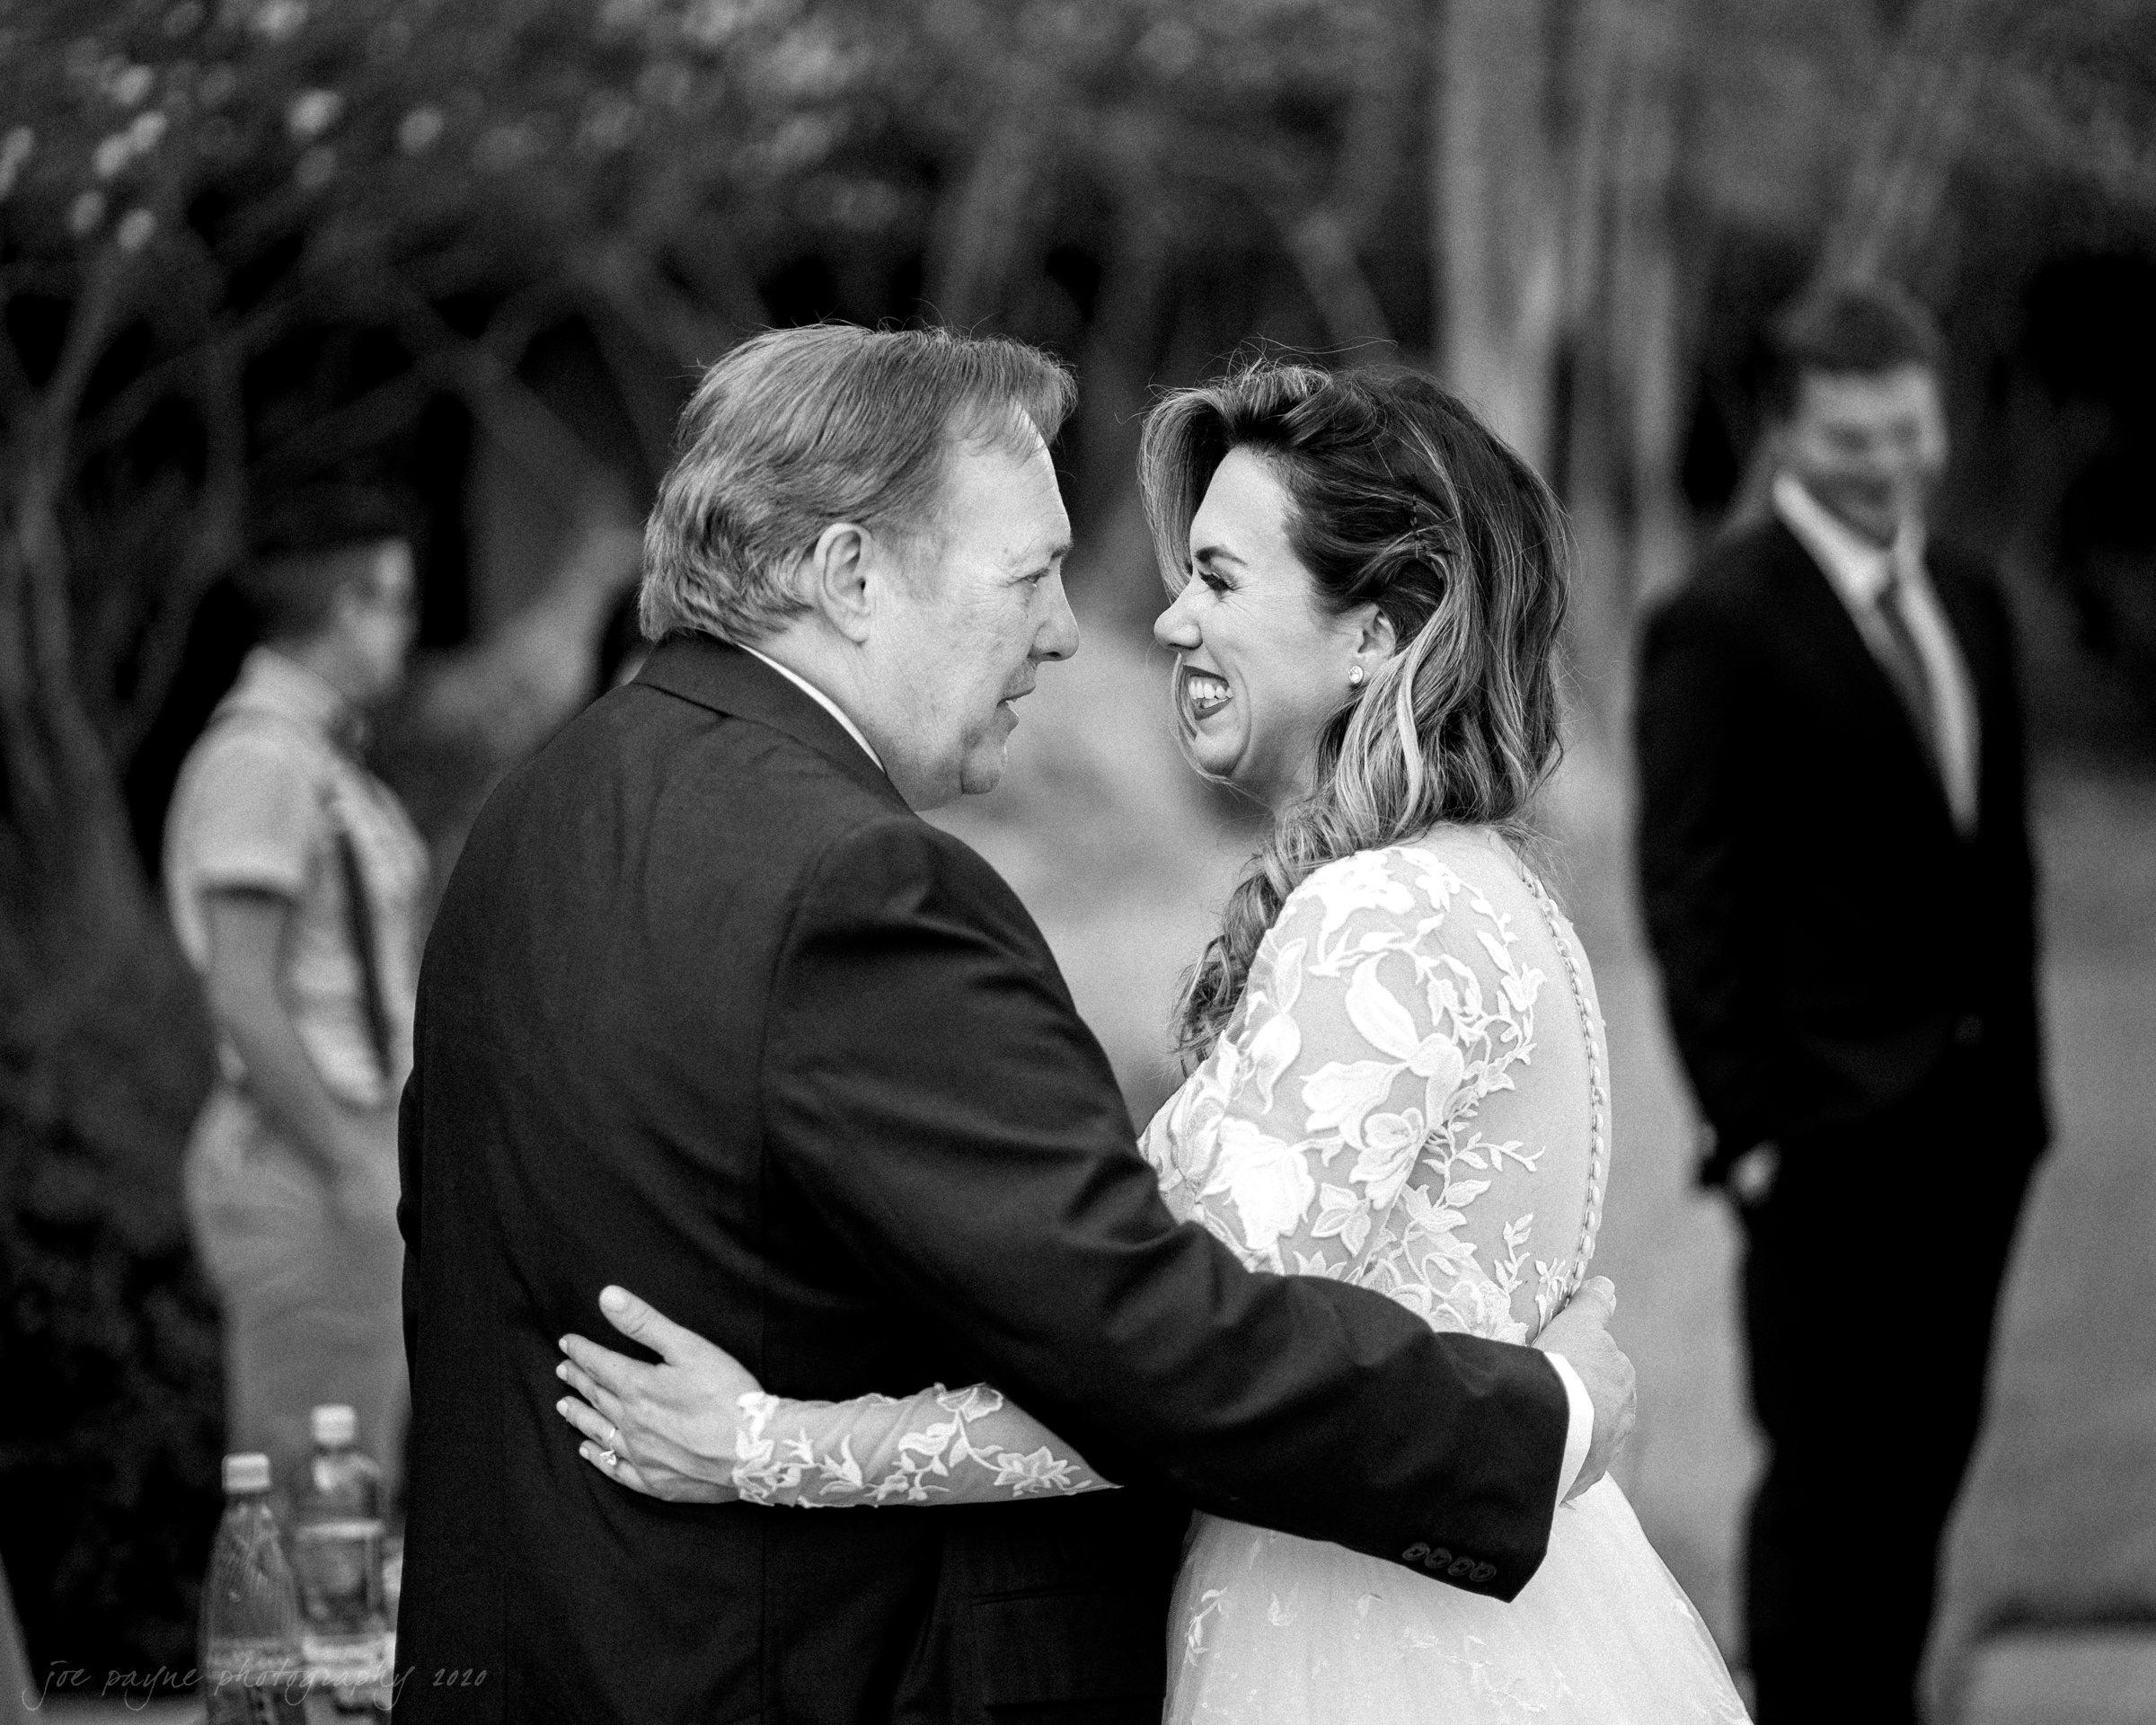 umstead hotel park wedding photography brittany harrison 14